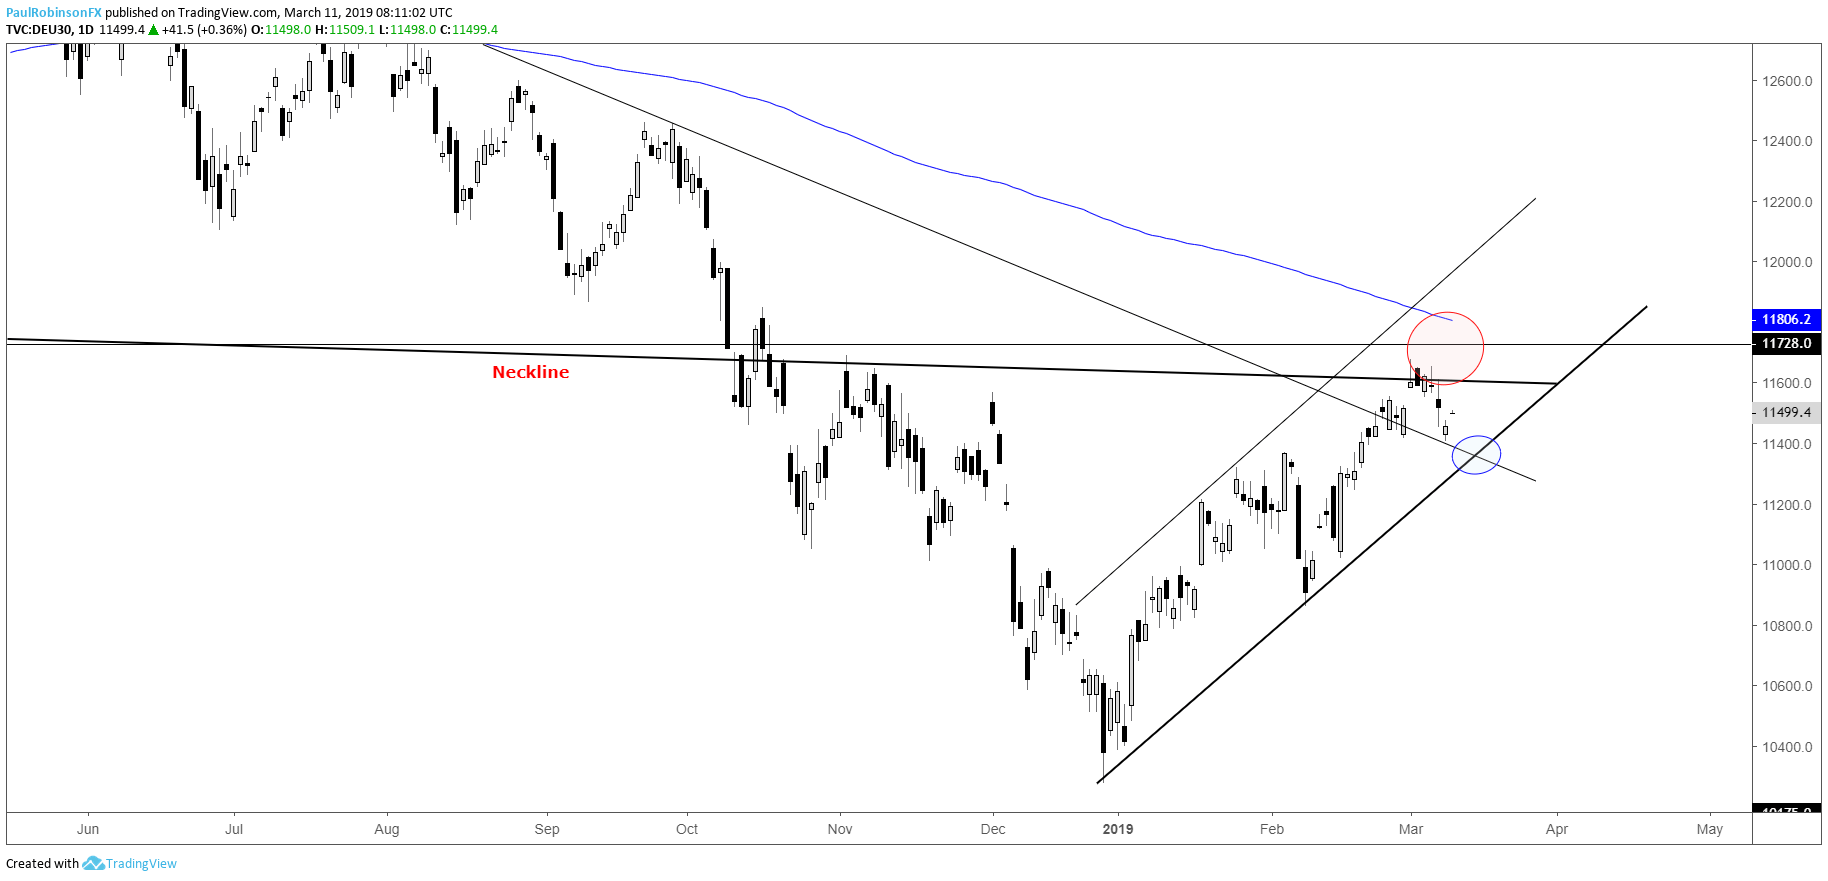 Dax 30 Amp Cac 40 Charts Turn From Resistance Has Channel